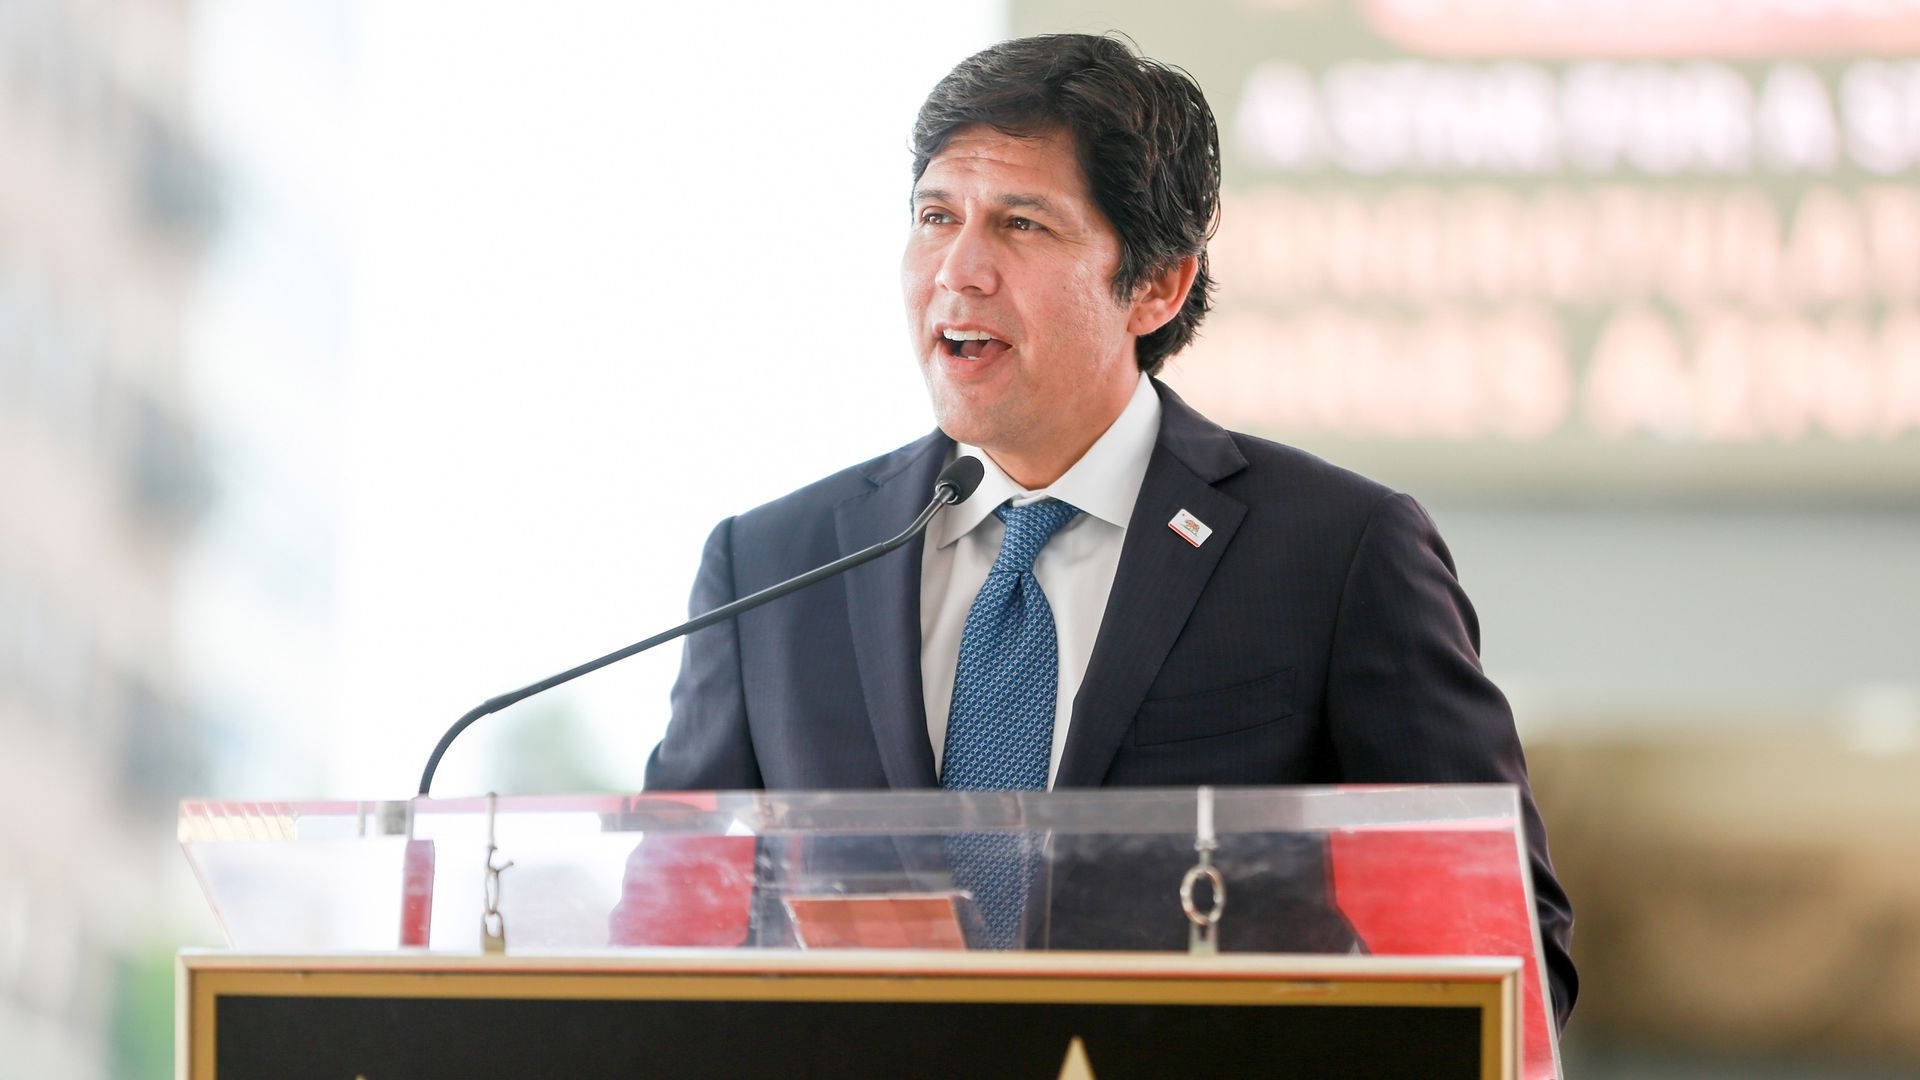 Kevin de León wearing a suit and speaking from a podium